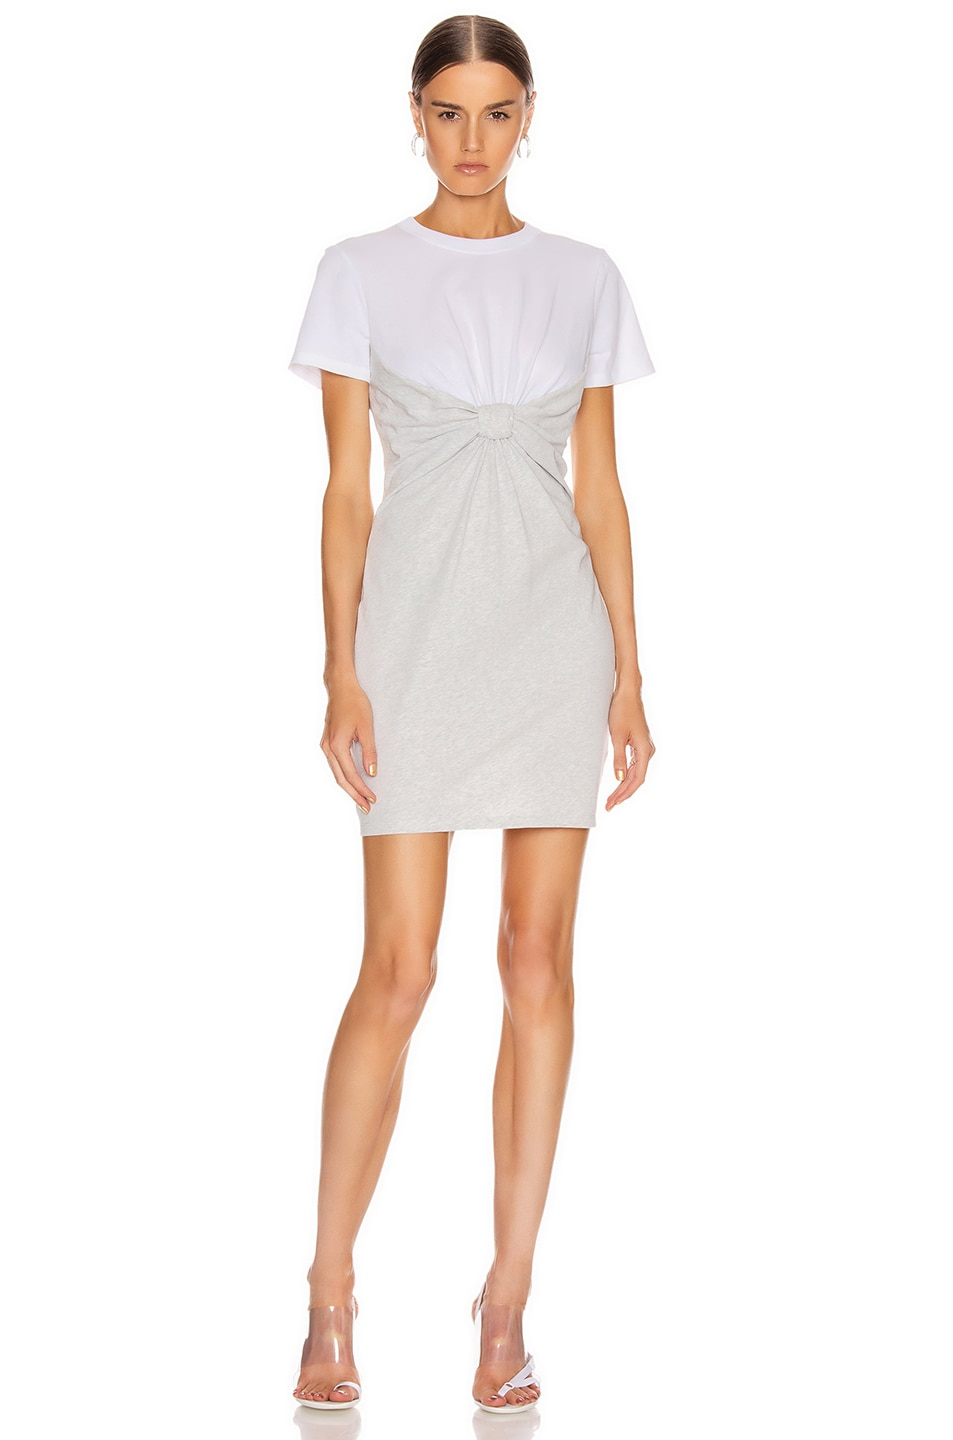 Image 1 of T by Alexander Wang High Twist Knot Dress in White & Light Heather Grey